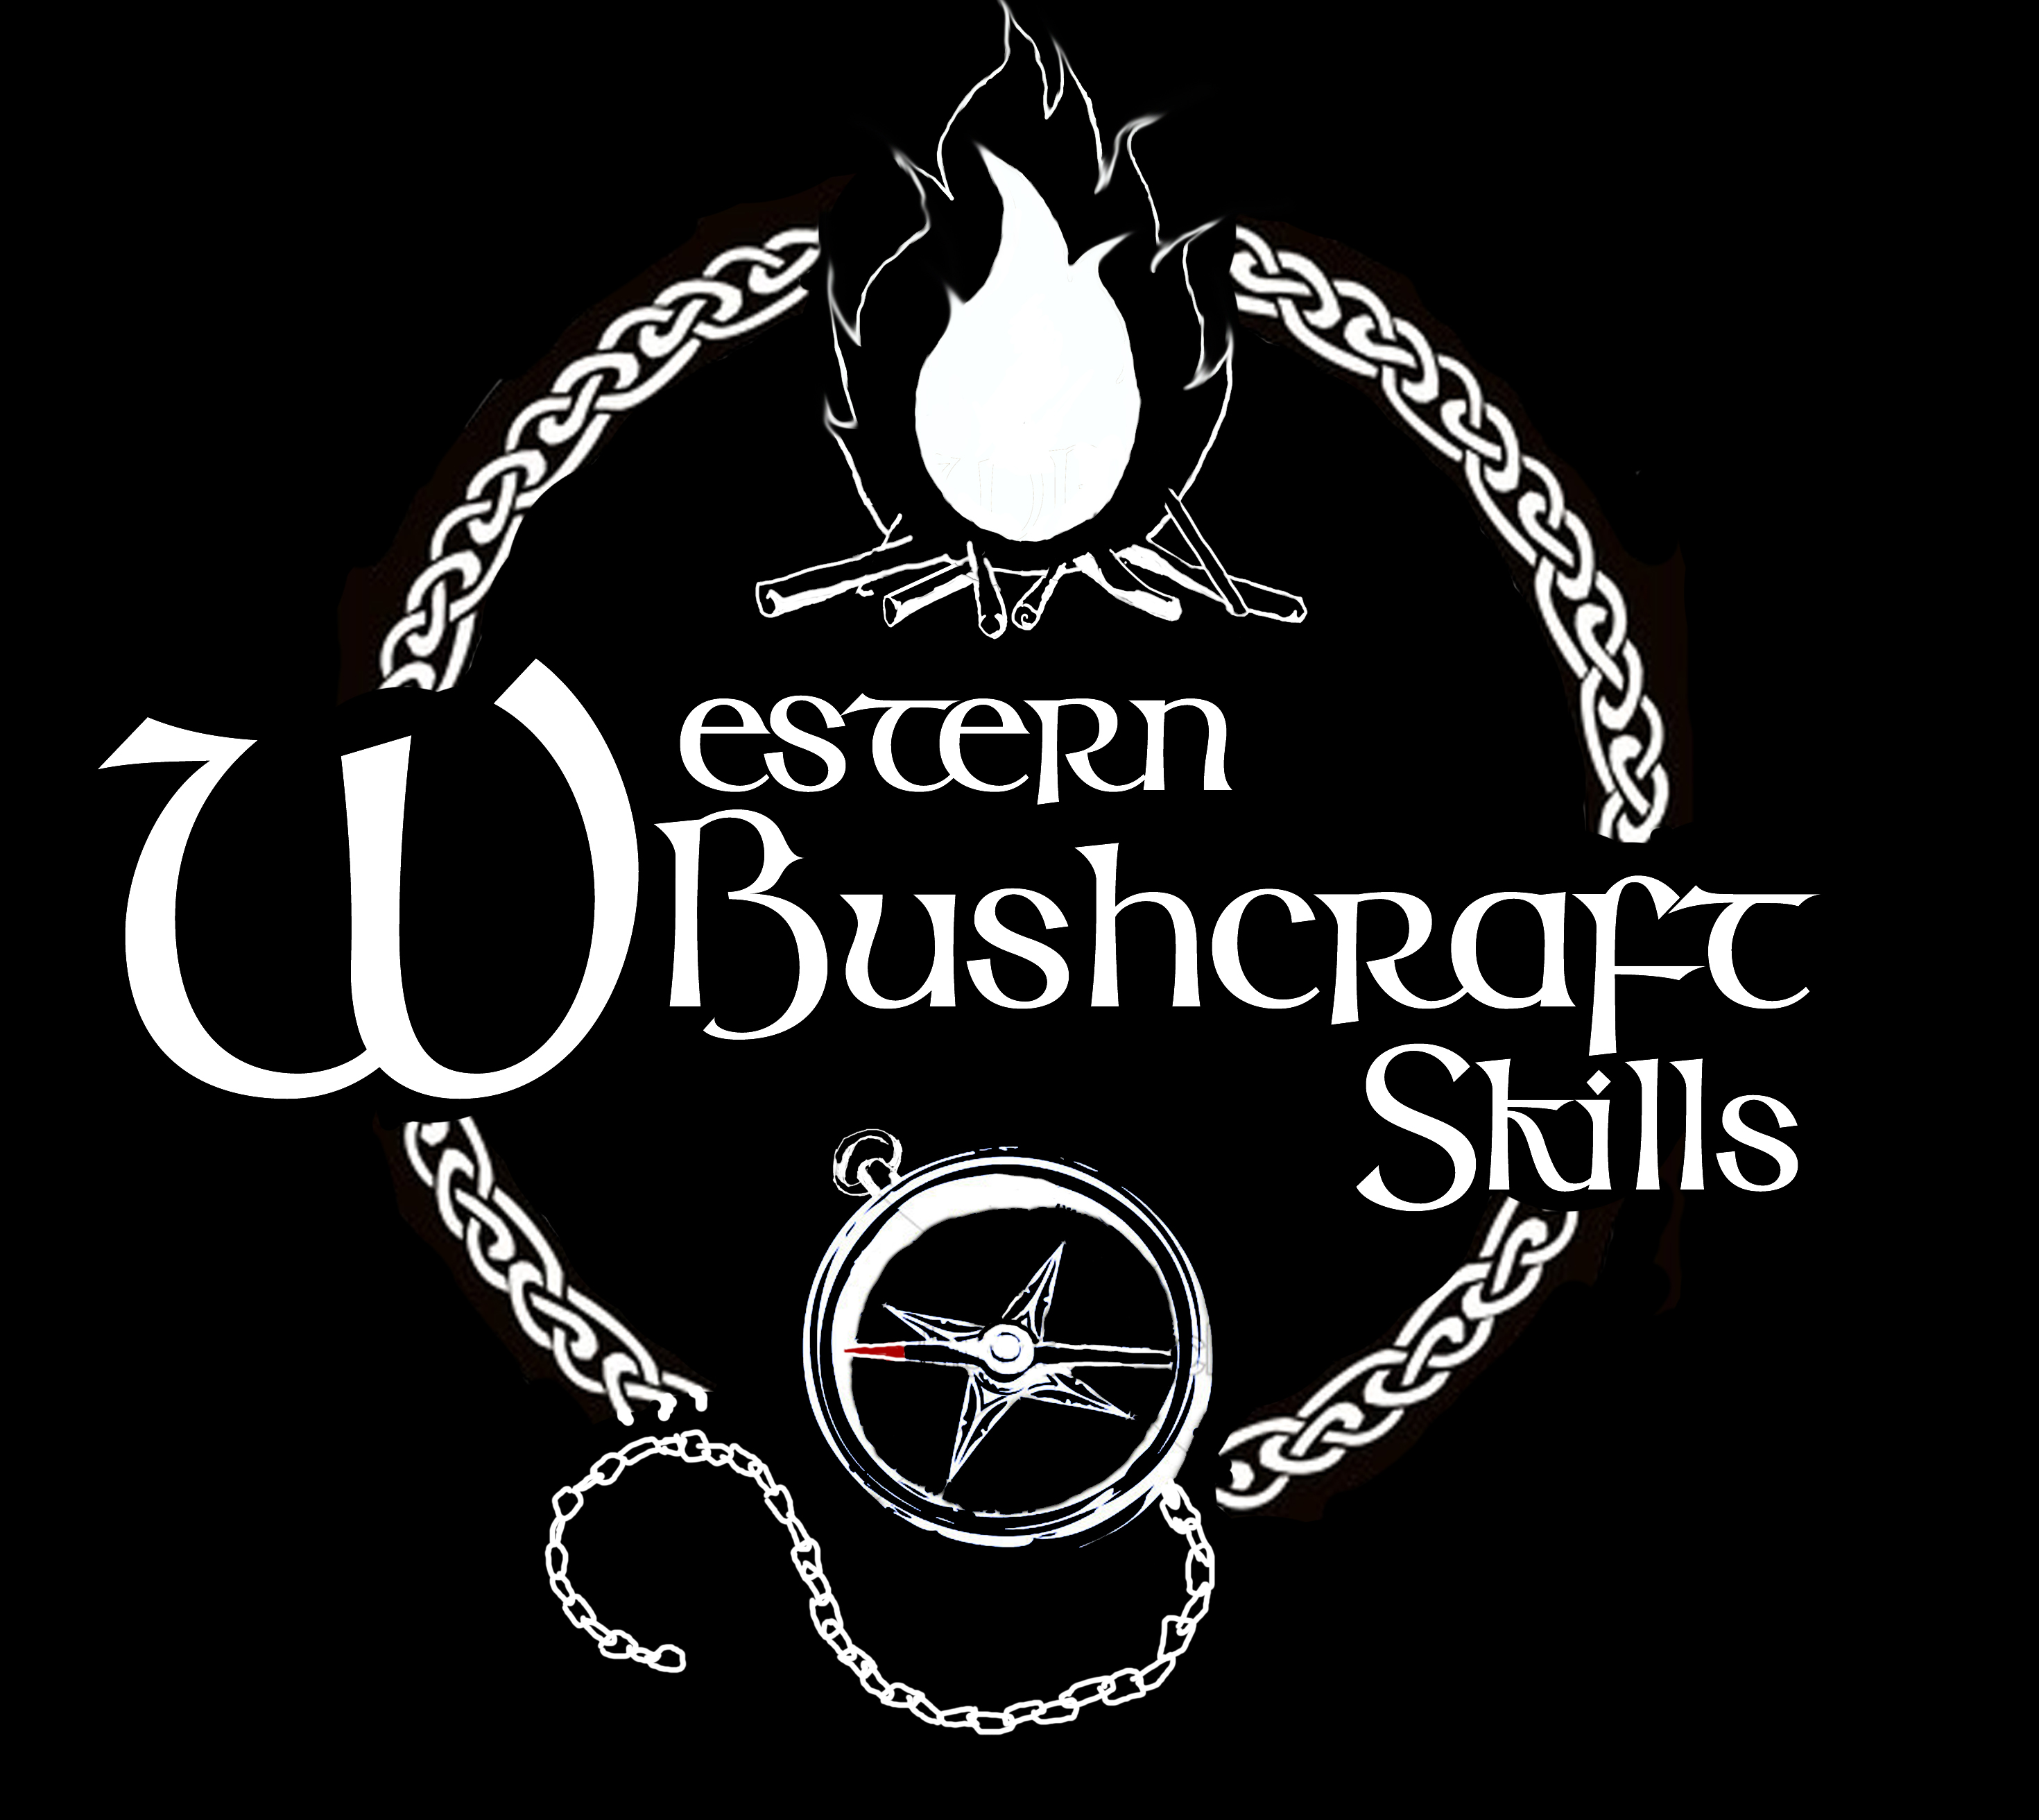 Western Bushcraft Skills Easter Camp